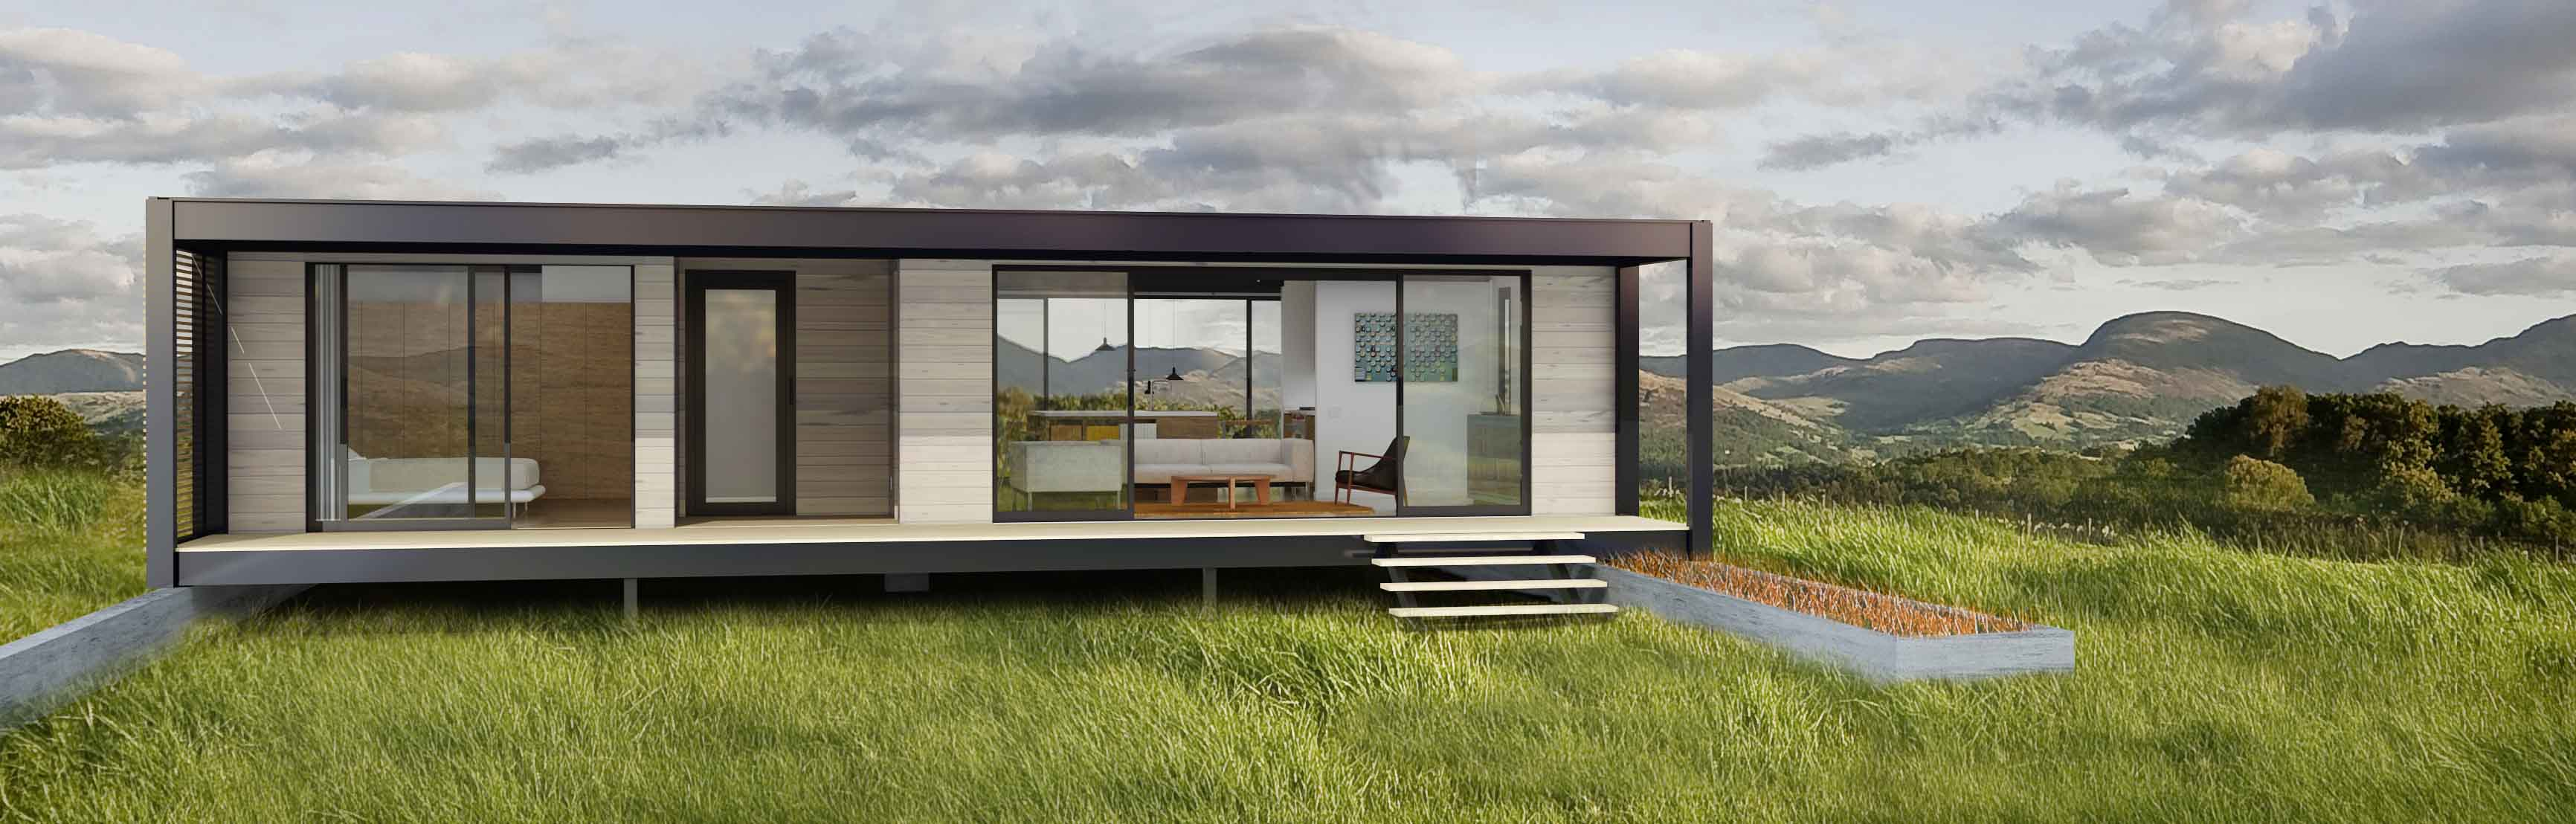 Container Homes Shipping Container House For Sale In Bangalore India